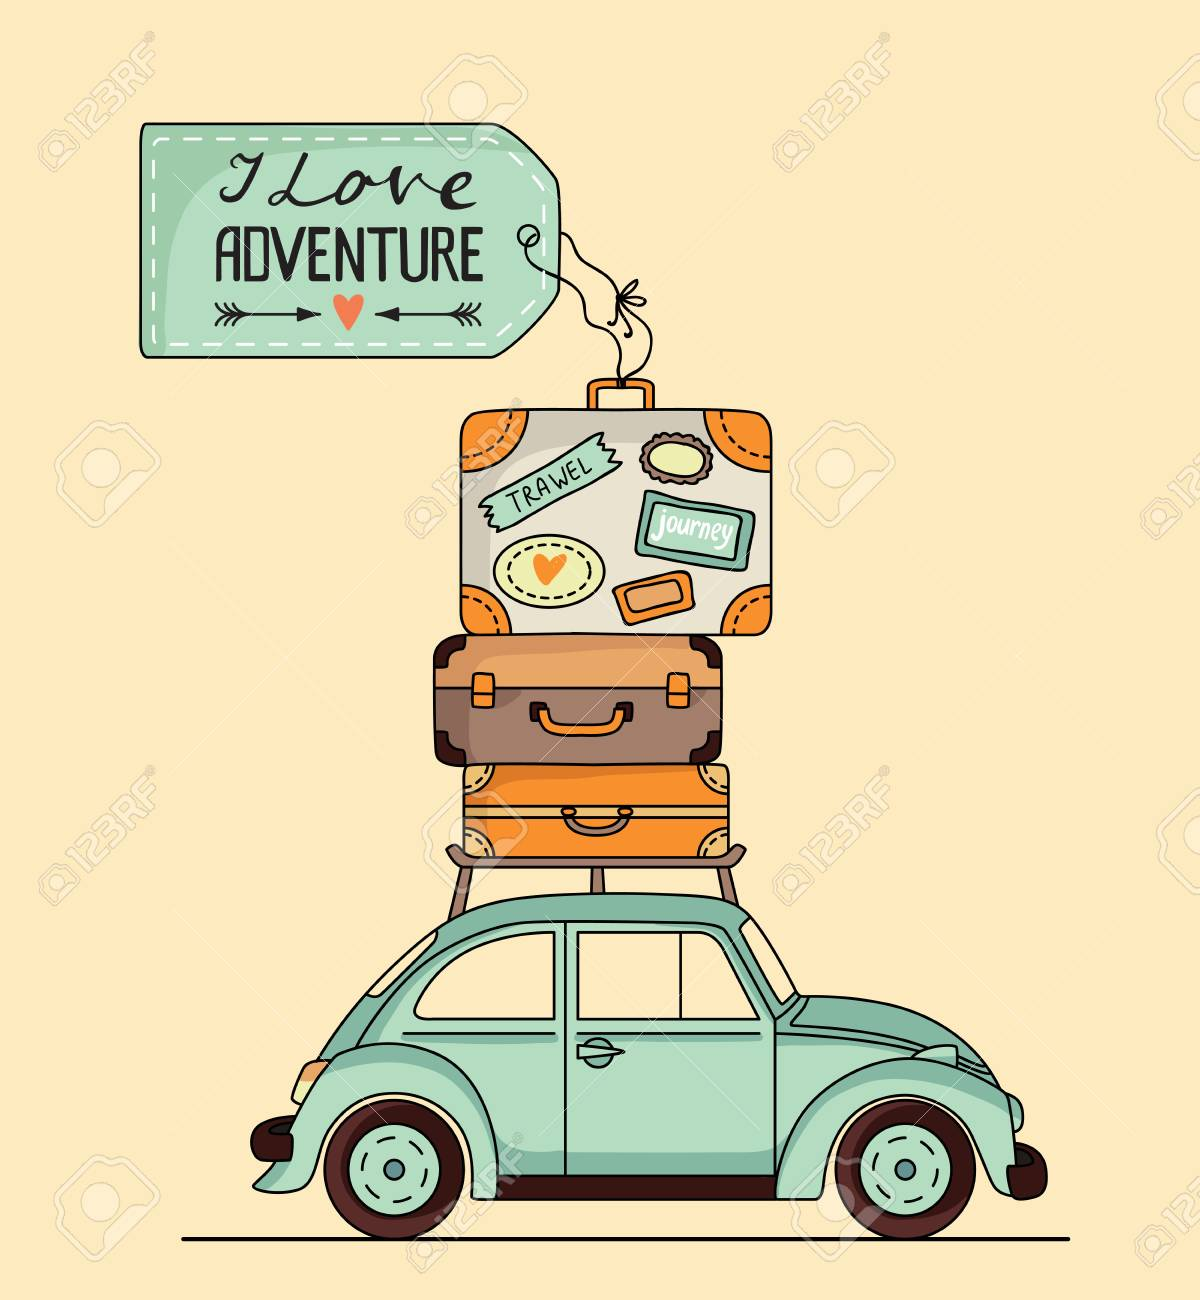 Vector Illustration Retro Car With Luggage On The Roof And Space